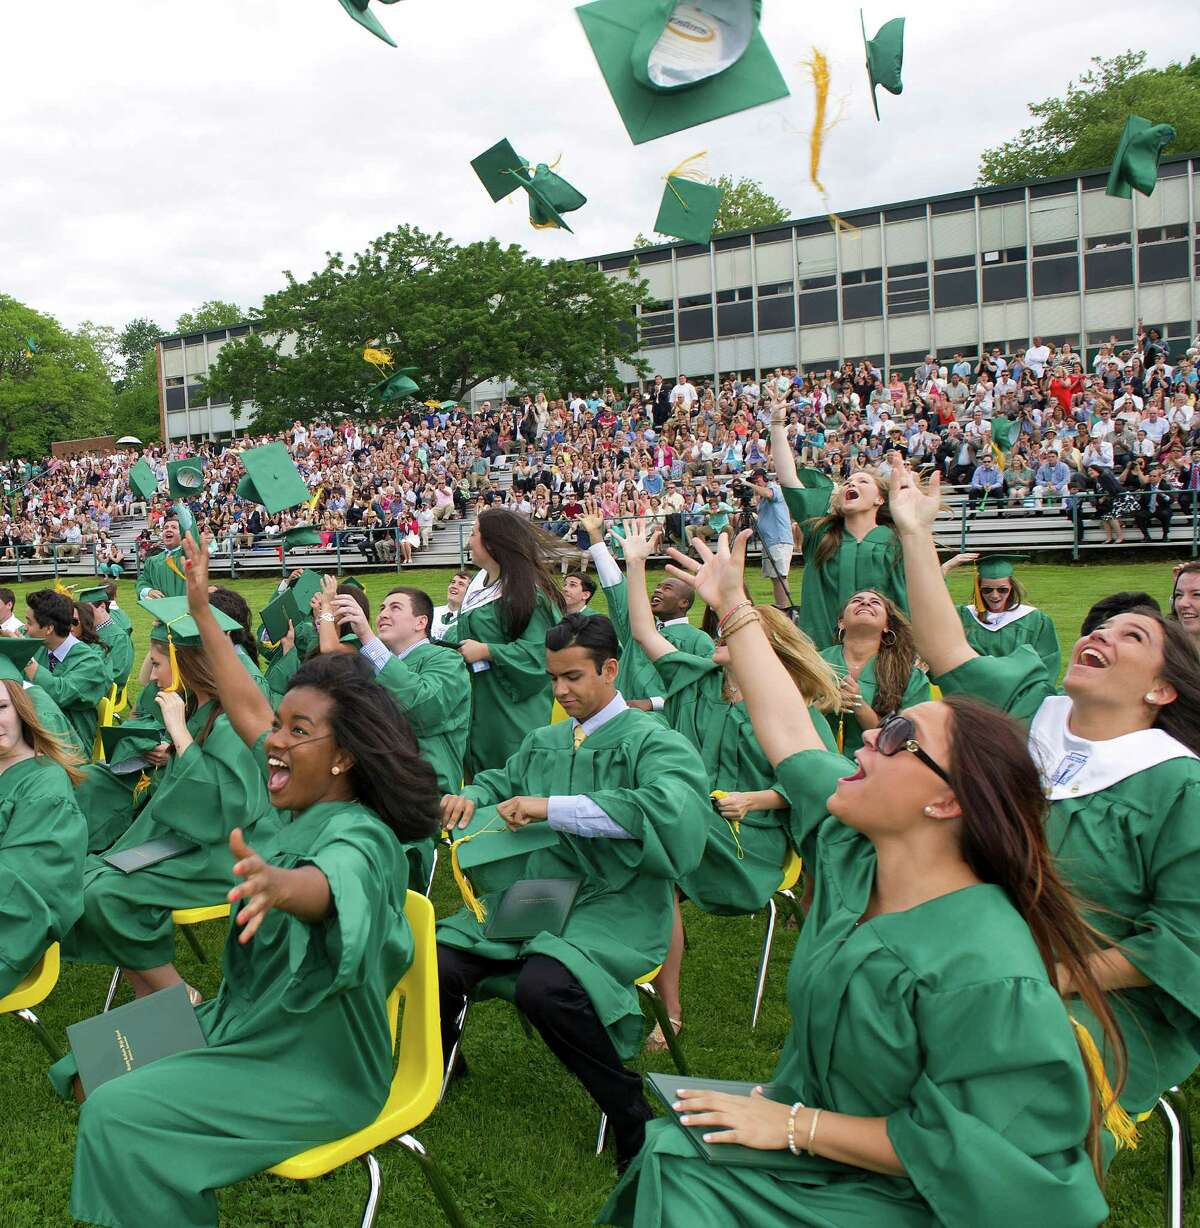 Students celebrate their graduation during Trinity Catholic's commencement ceremony on Saturday, May 31, 2014.